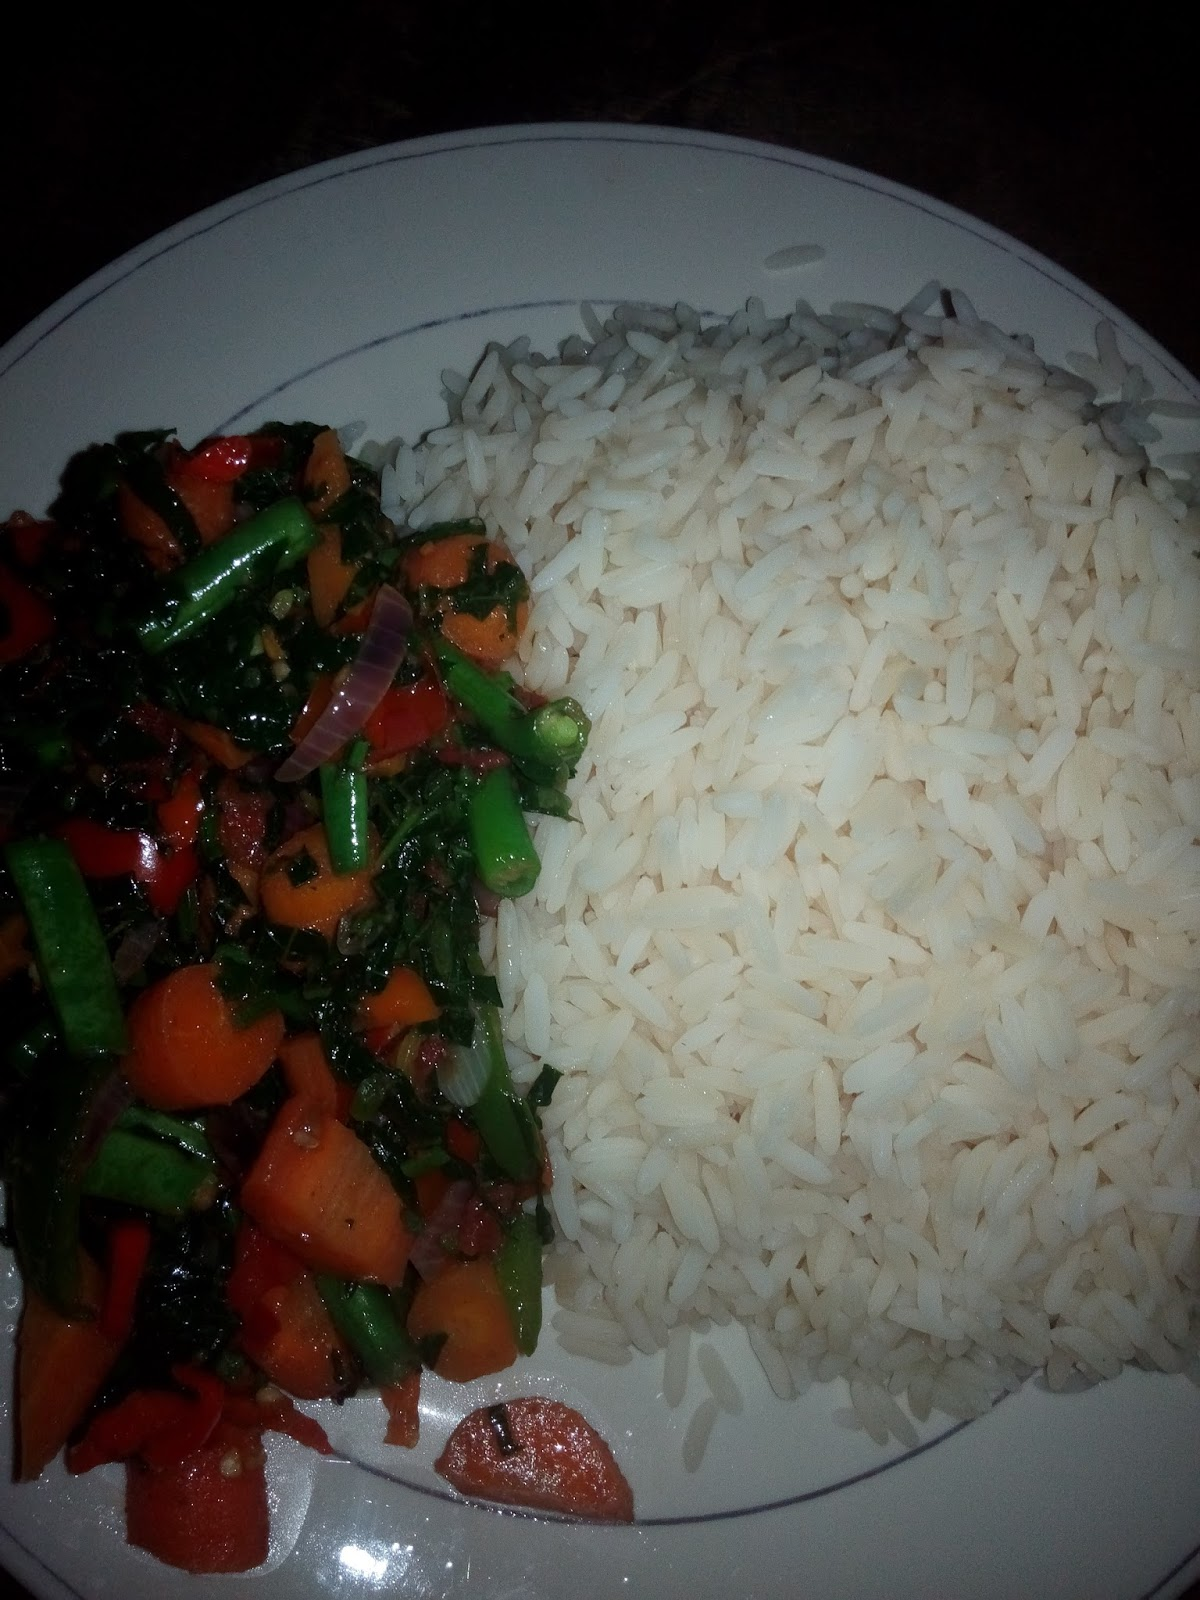 Pwesh kitchen all nigerian food recipe blog white rice served food is ready delicious forumfinder Gallery